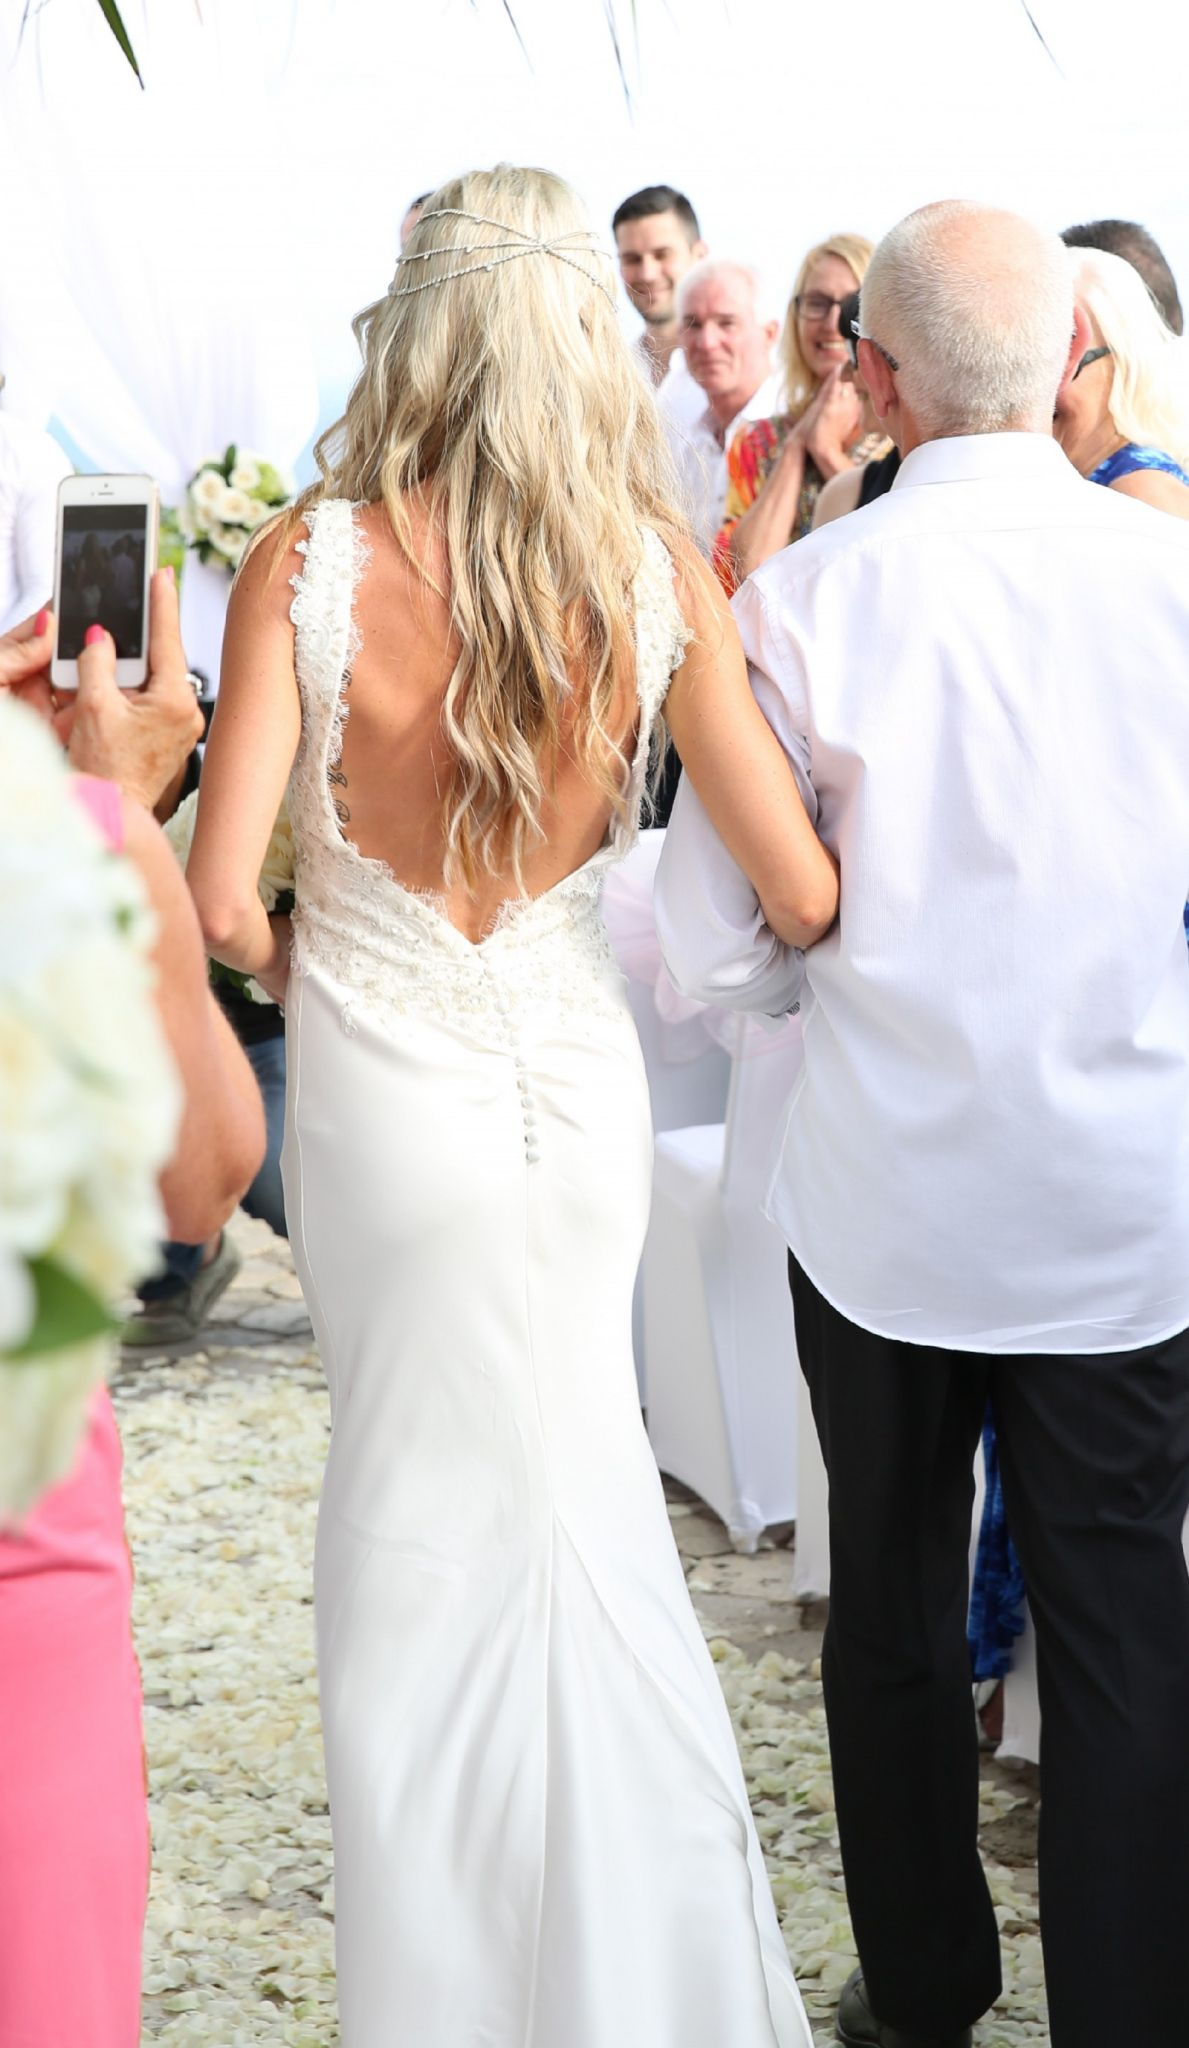 Second hand wedding dresses for sale informal wedding dresses for second hand wedding dresses for sale informal wedding dresses for older brides check more at ombrellifo Gallery